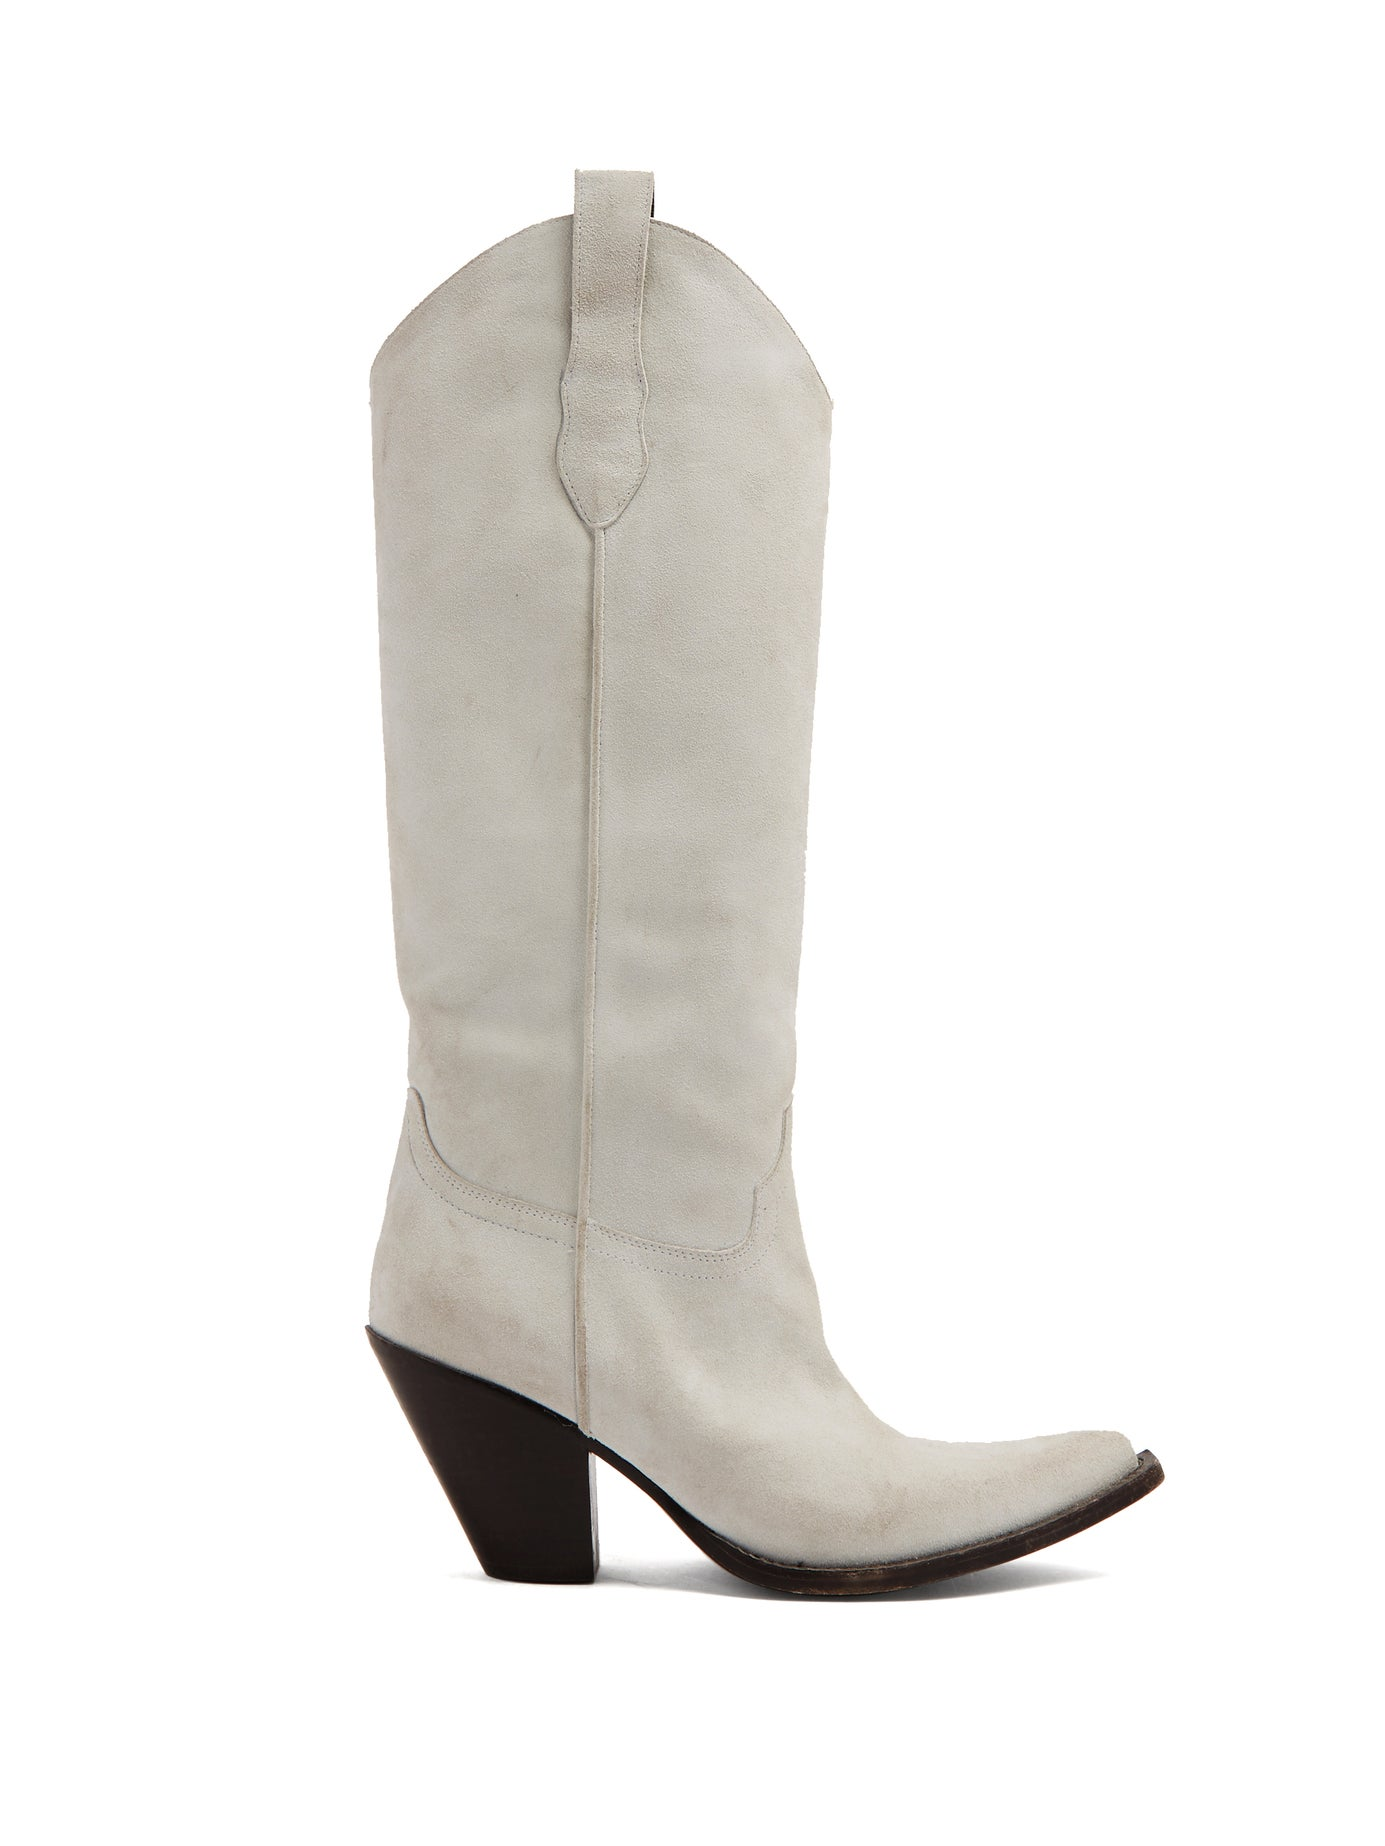 Maison Margiela | Western suede knee-high boots | Clouty